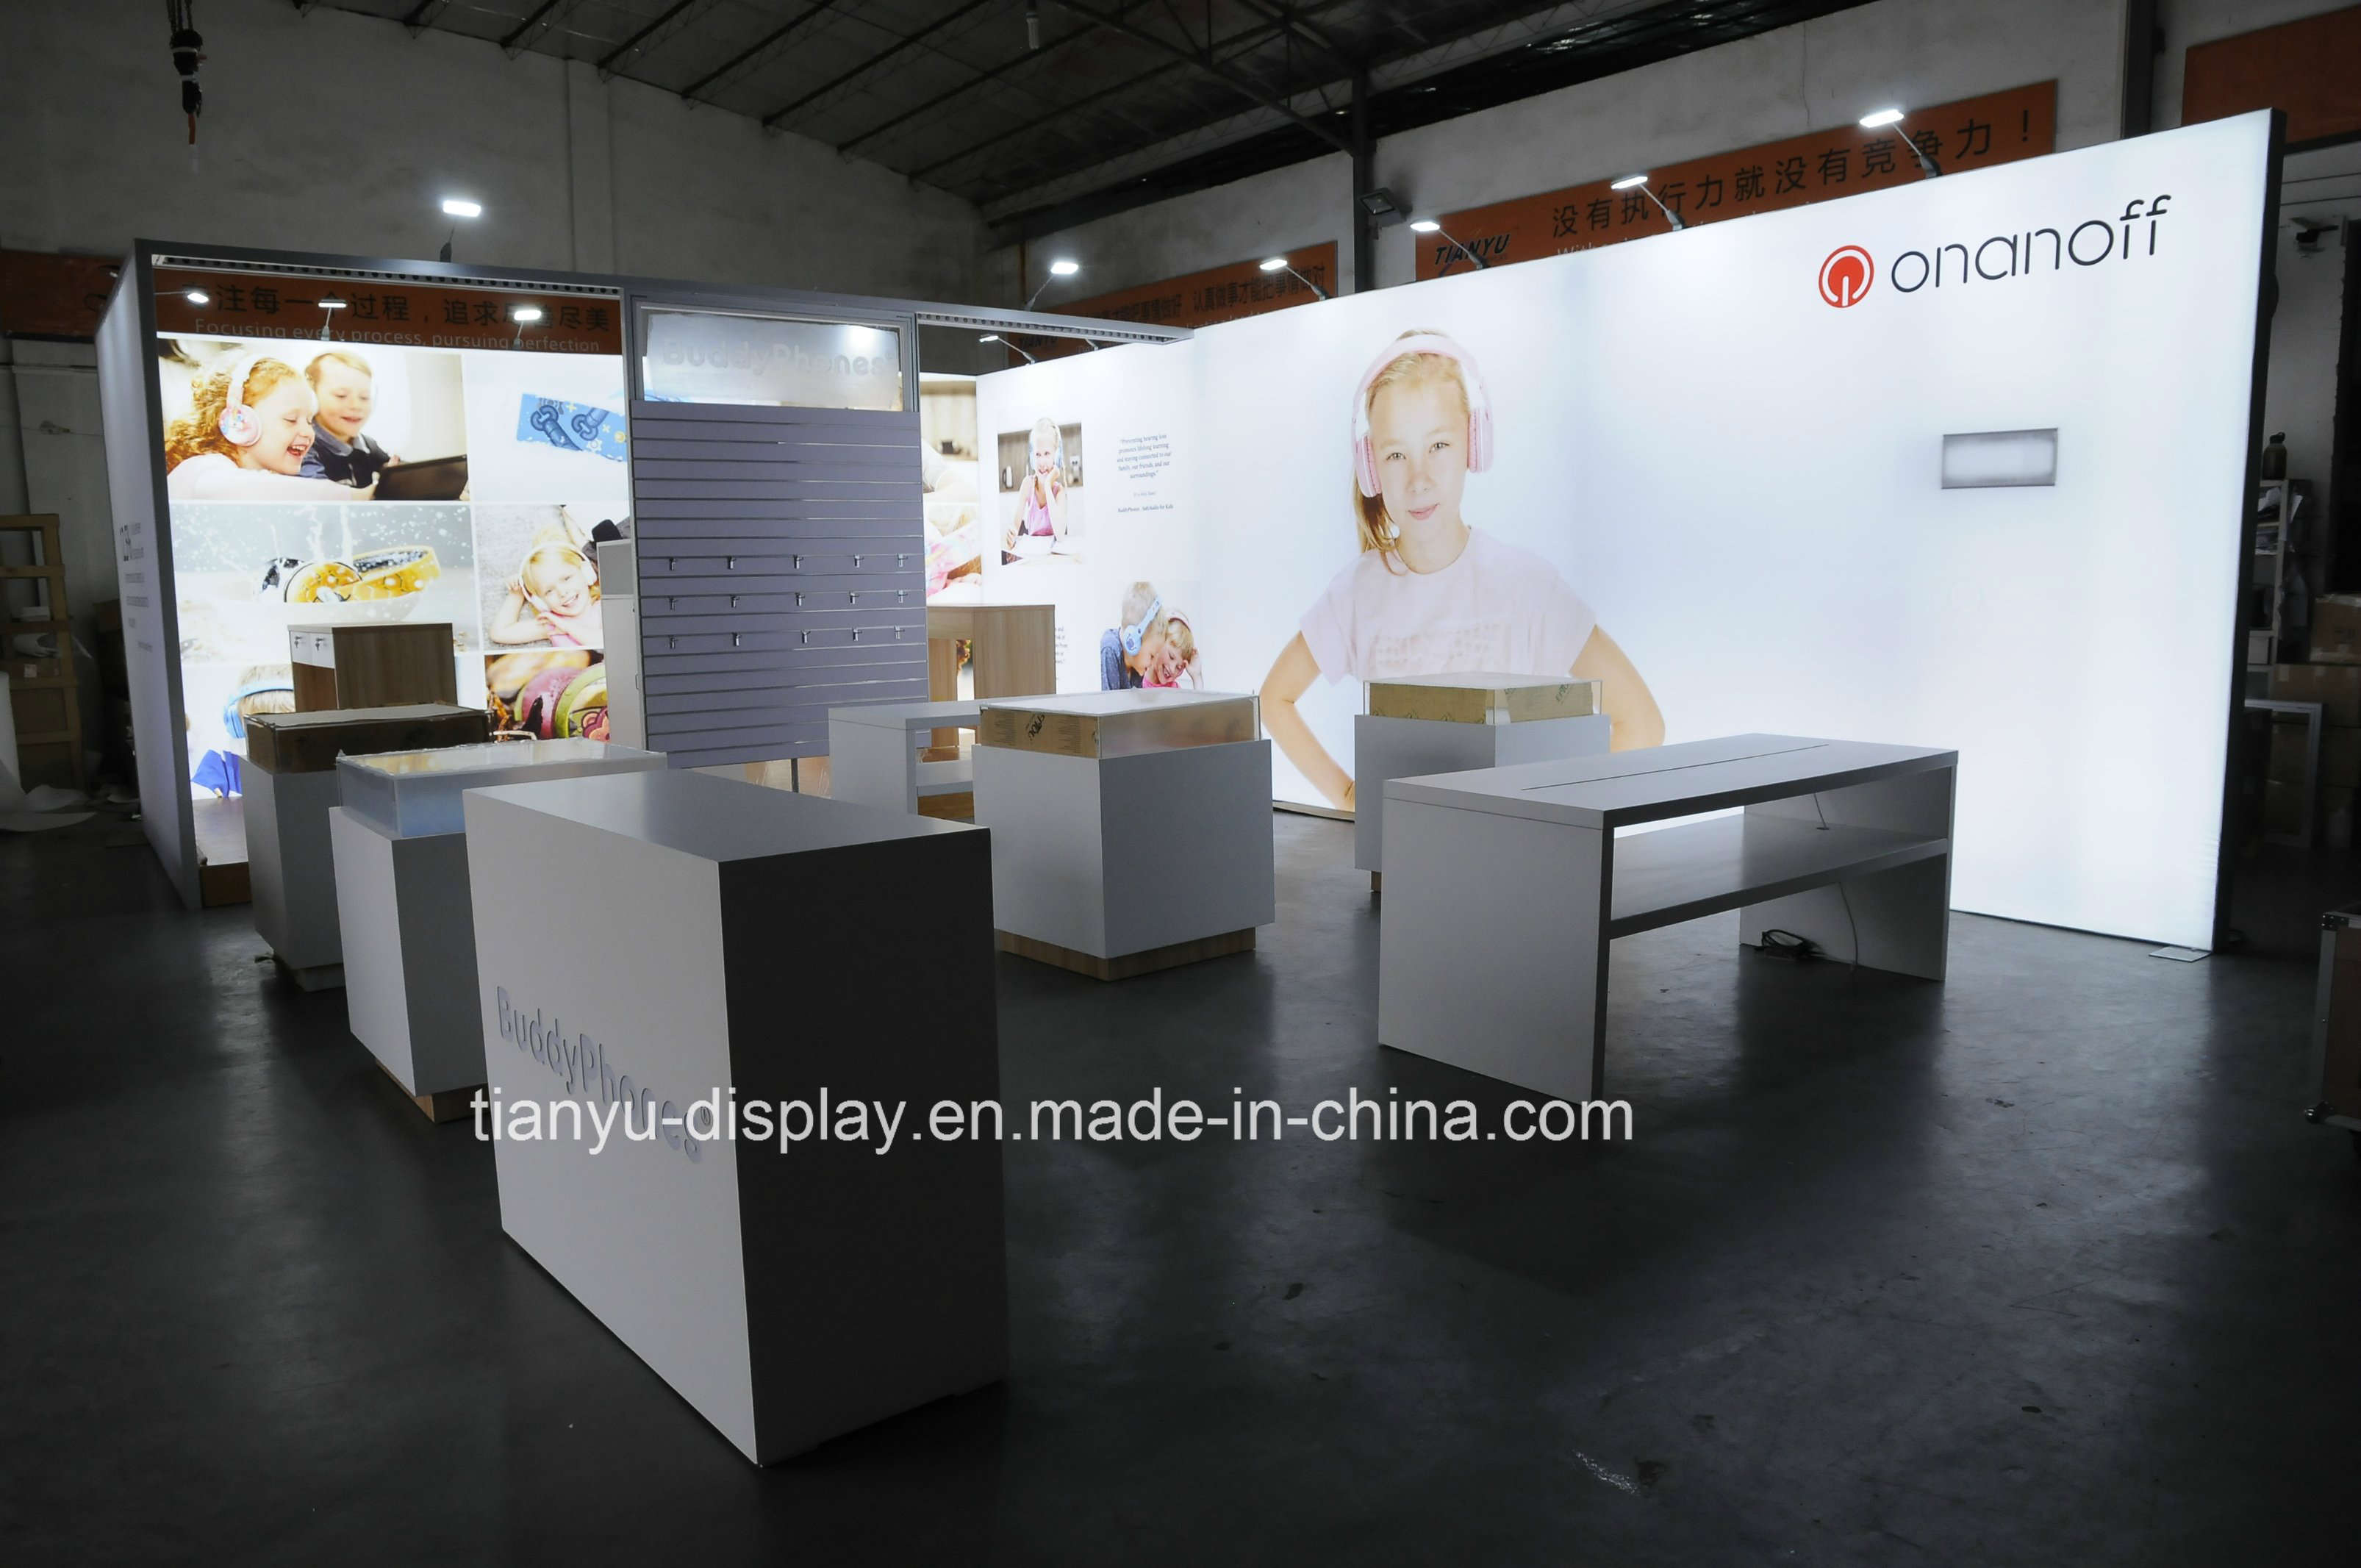 Exhibition Stall Material : Durable aluminum expo stand trade show exhibition stall free design